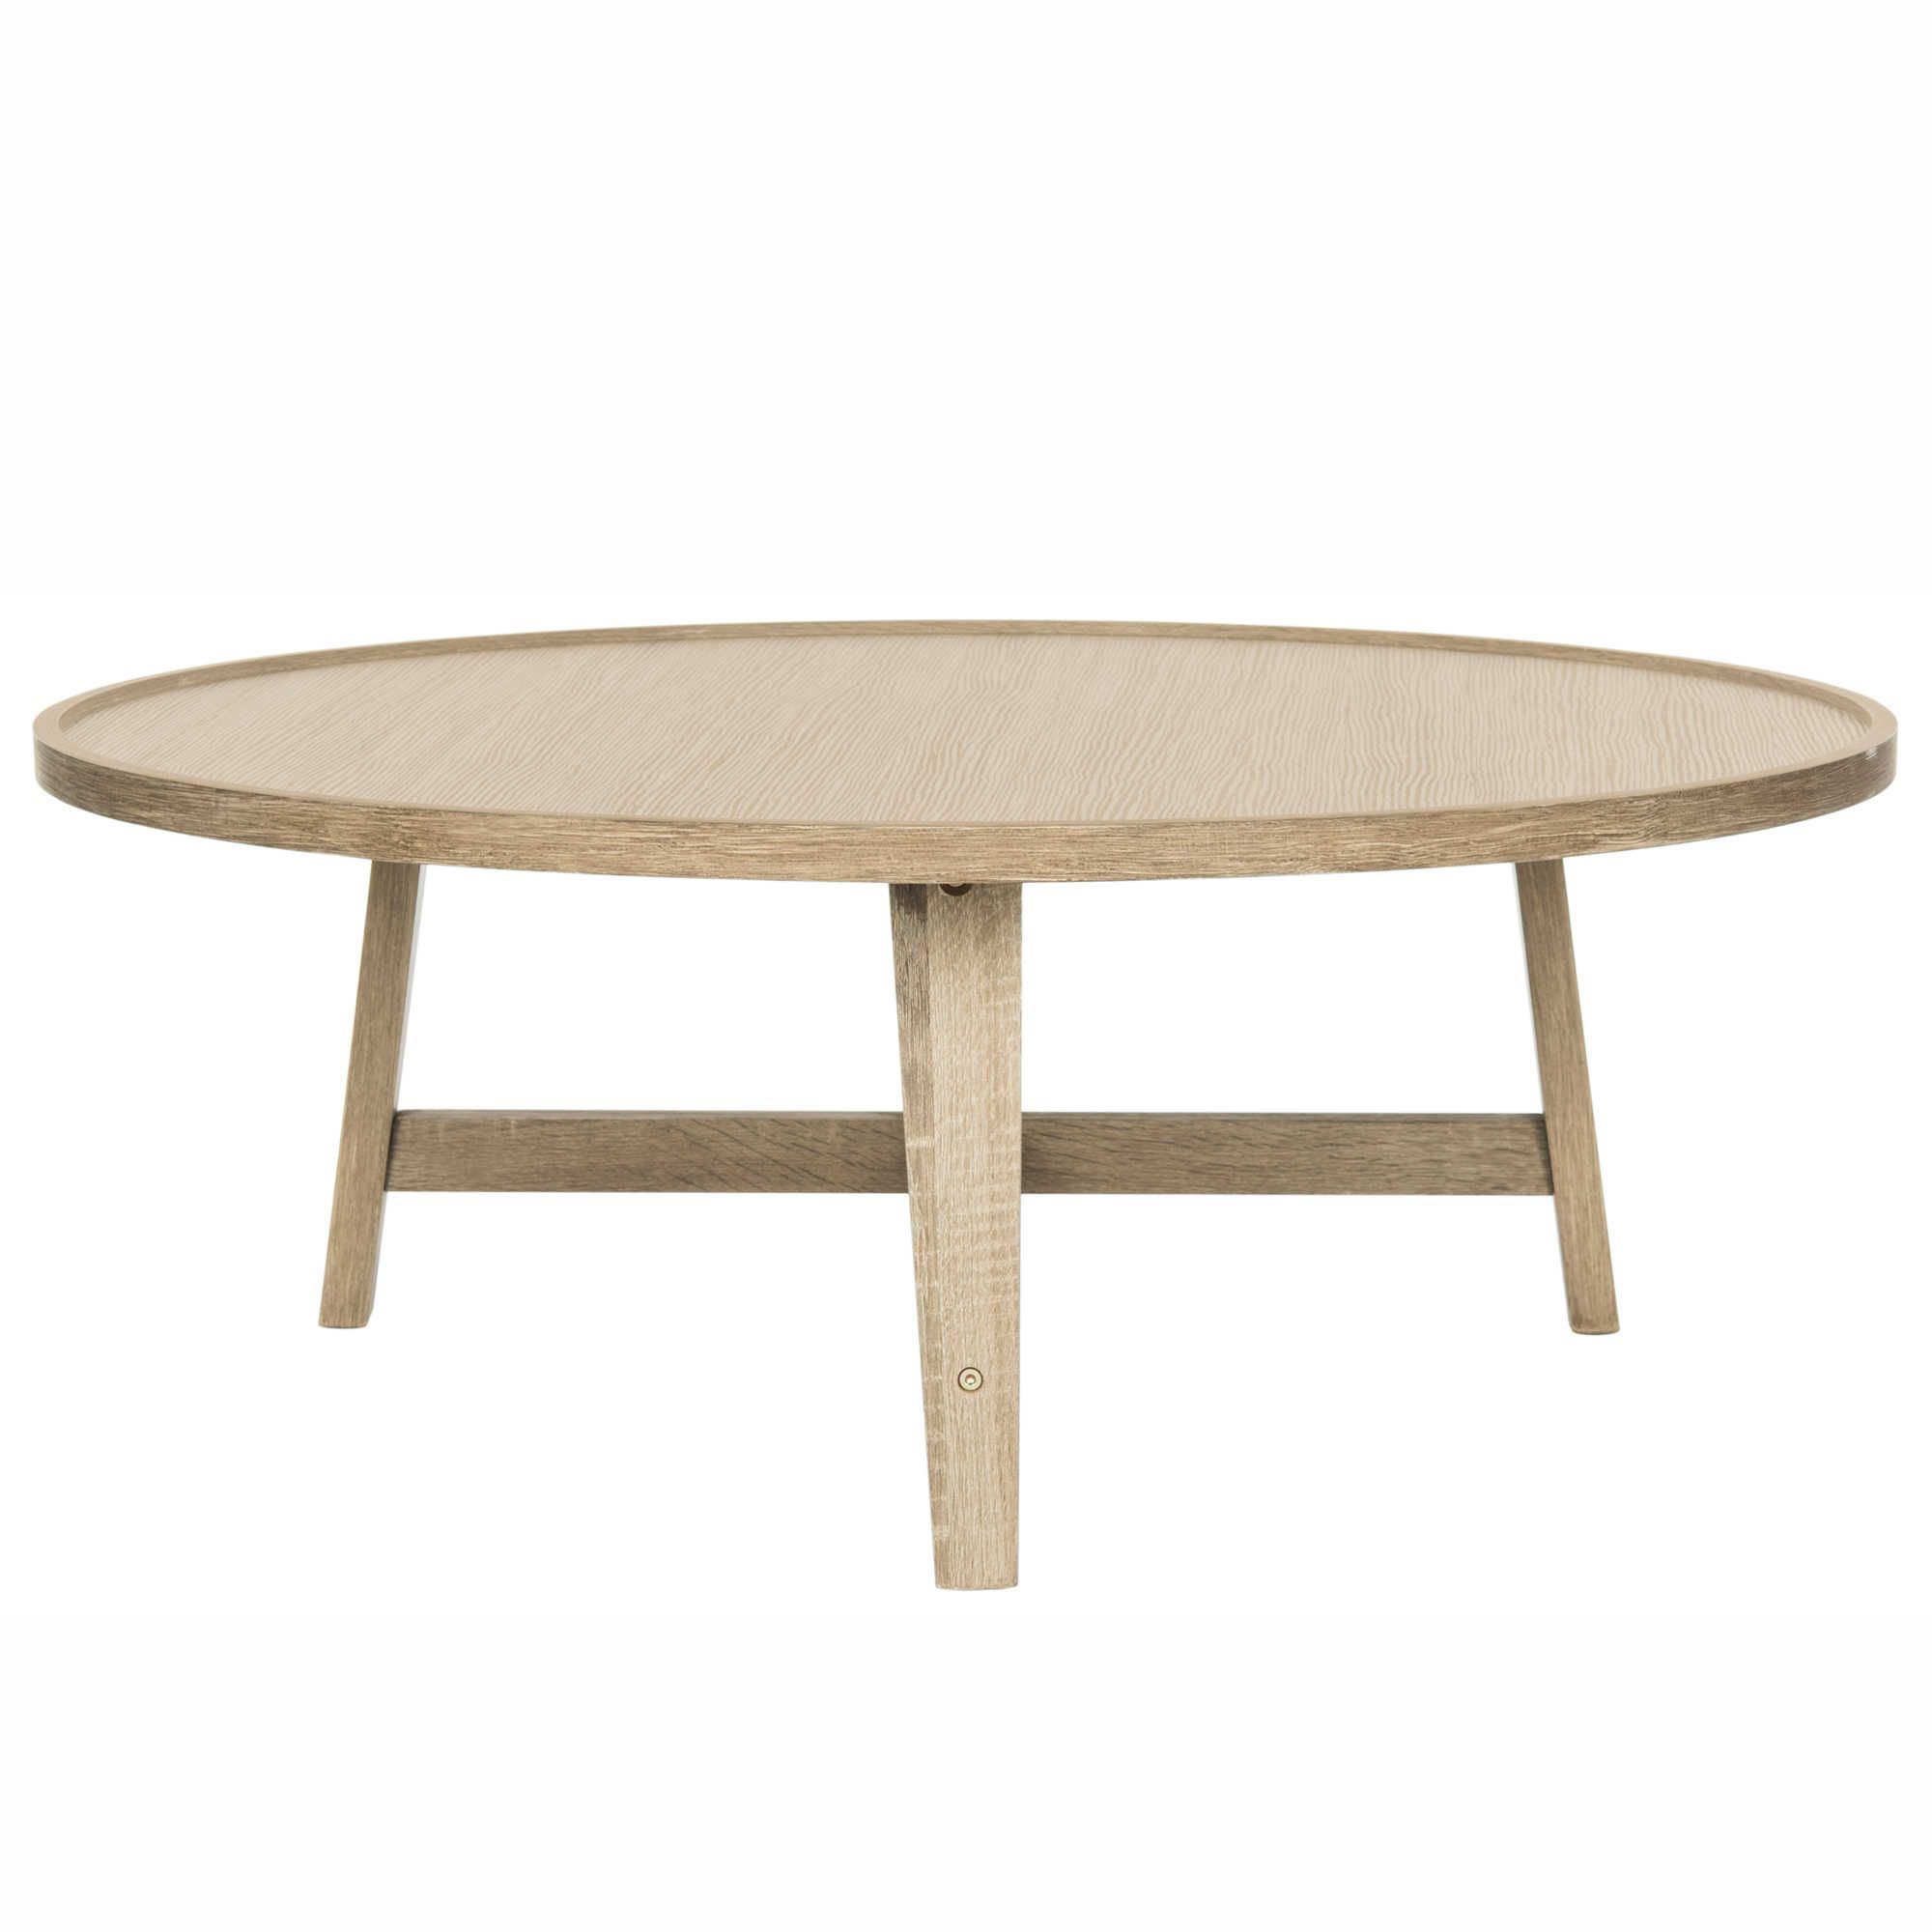 Light Grey Mid Century Coffee Table Eclectic Goods In 2020 Mid Century Coffee Table Coffee Table Wood Coffee Table [ 2000 x 2000 Pixel ]